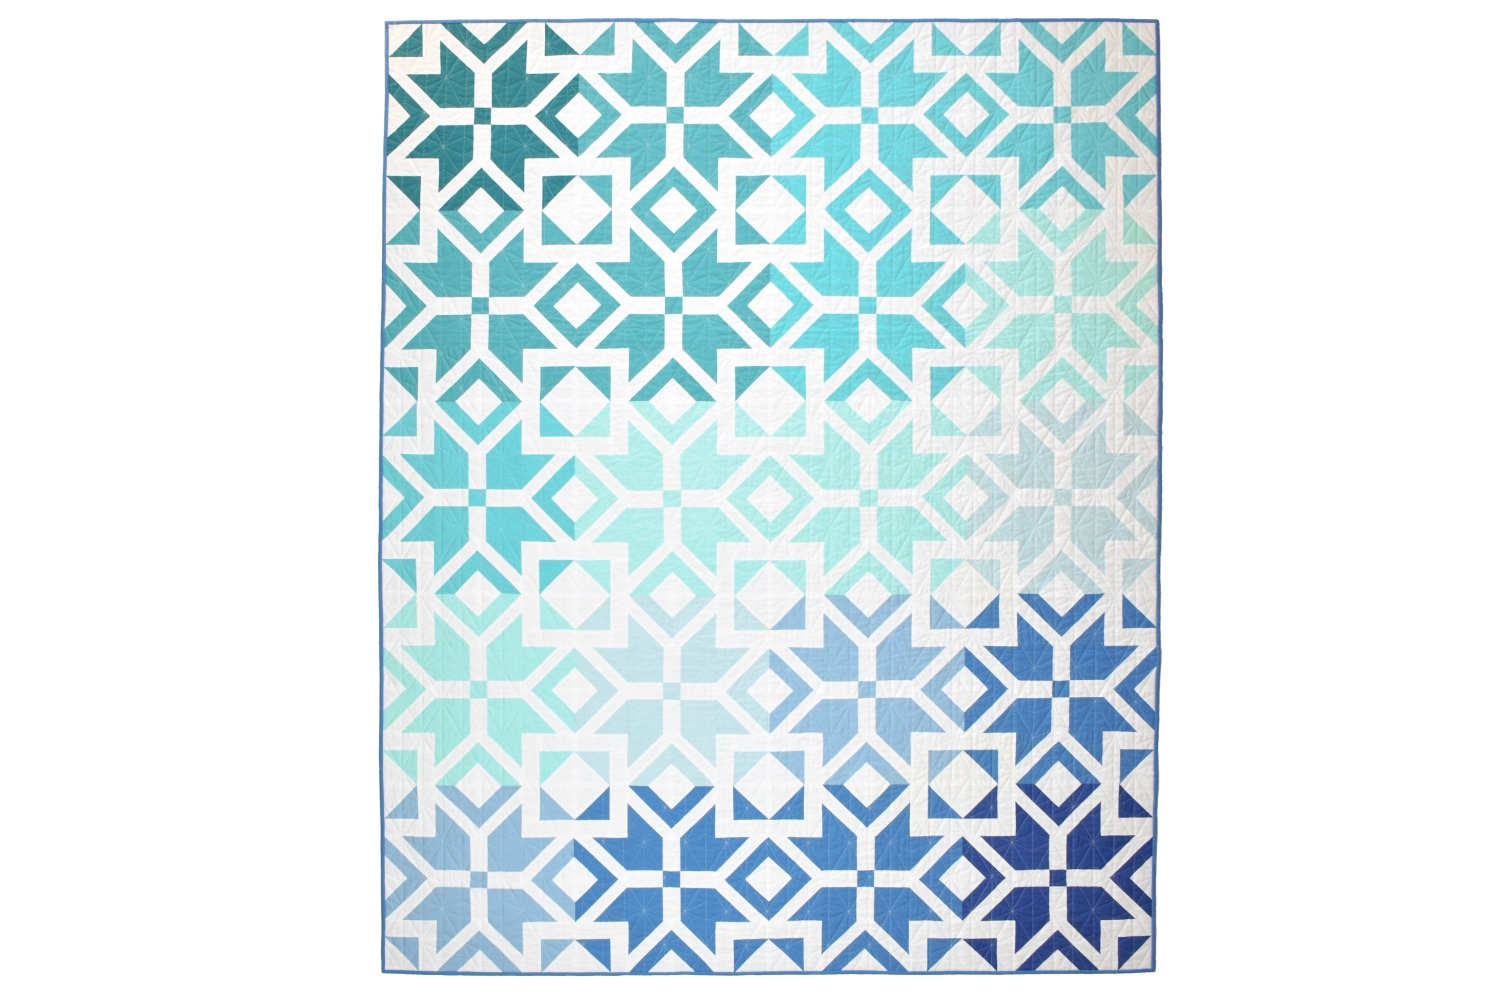 Nordic Star Ombre Quilt